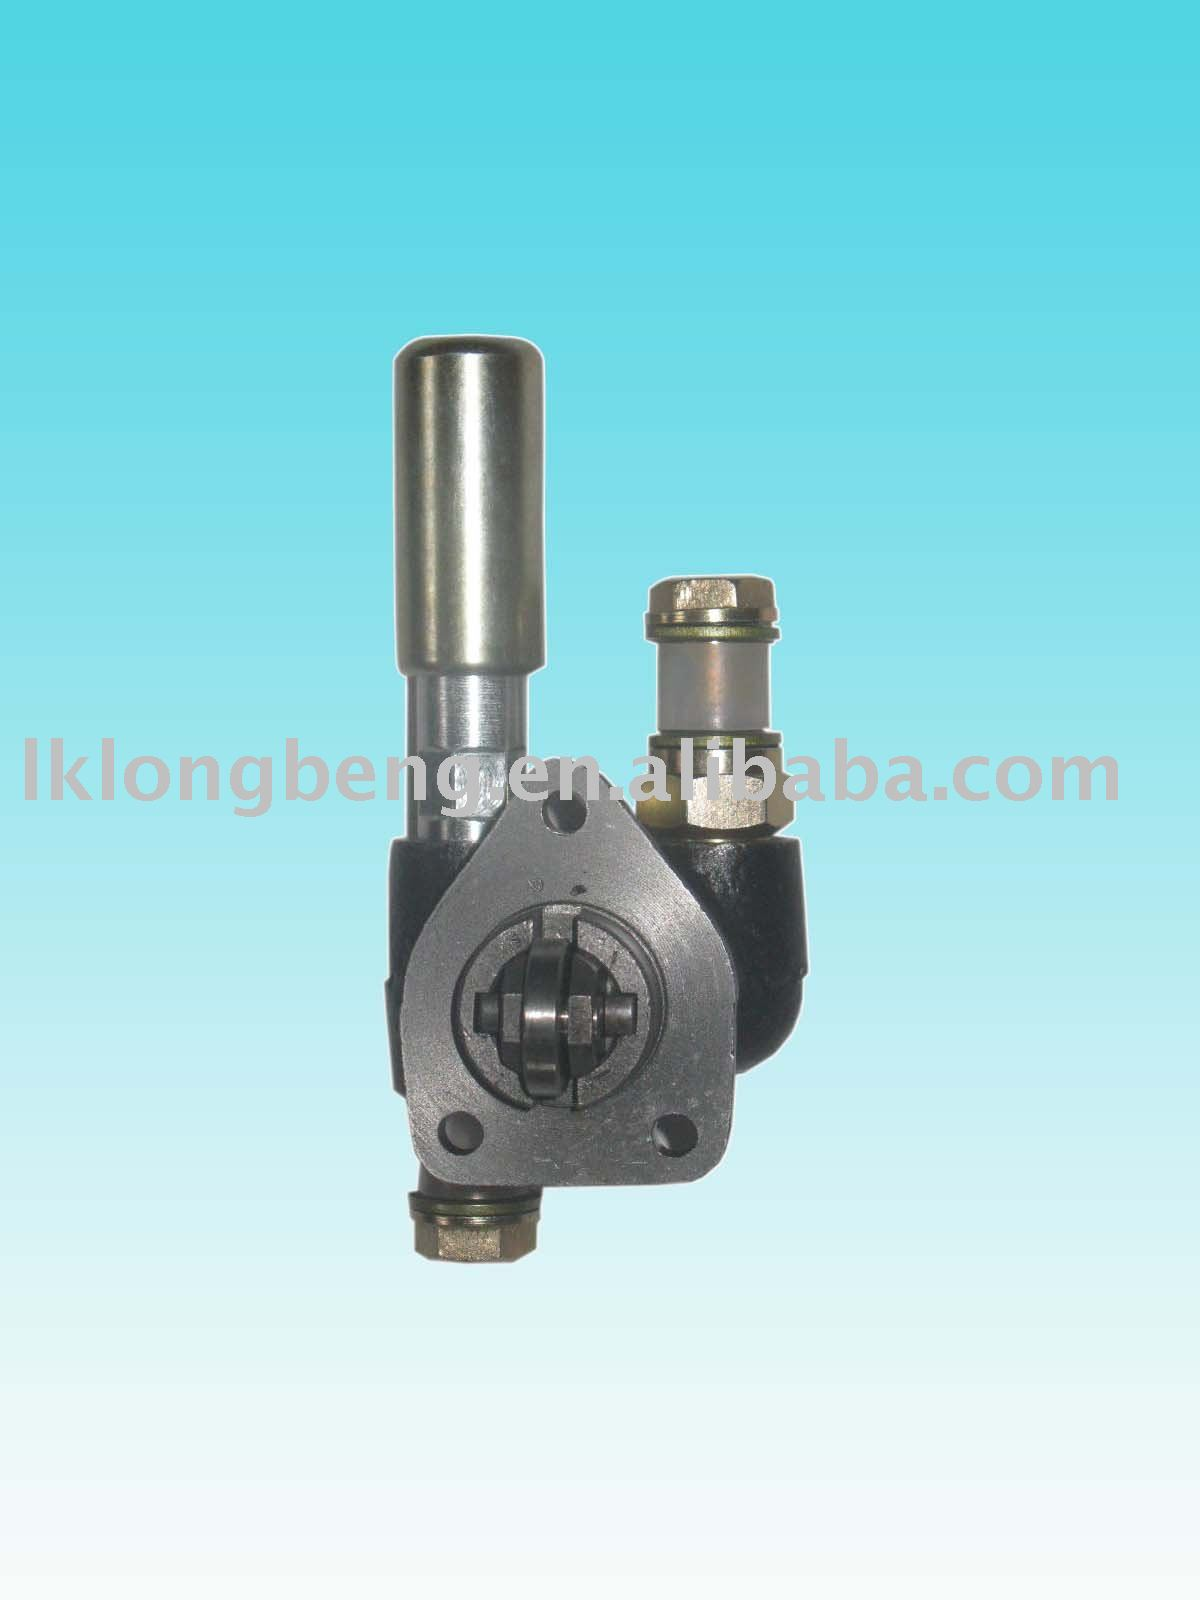 S305 Fuel supply pump